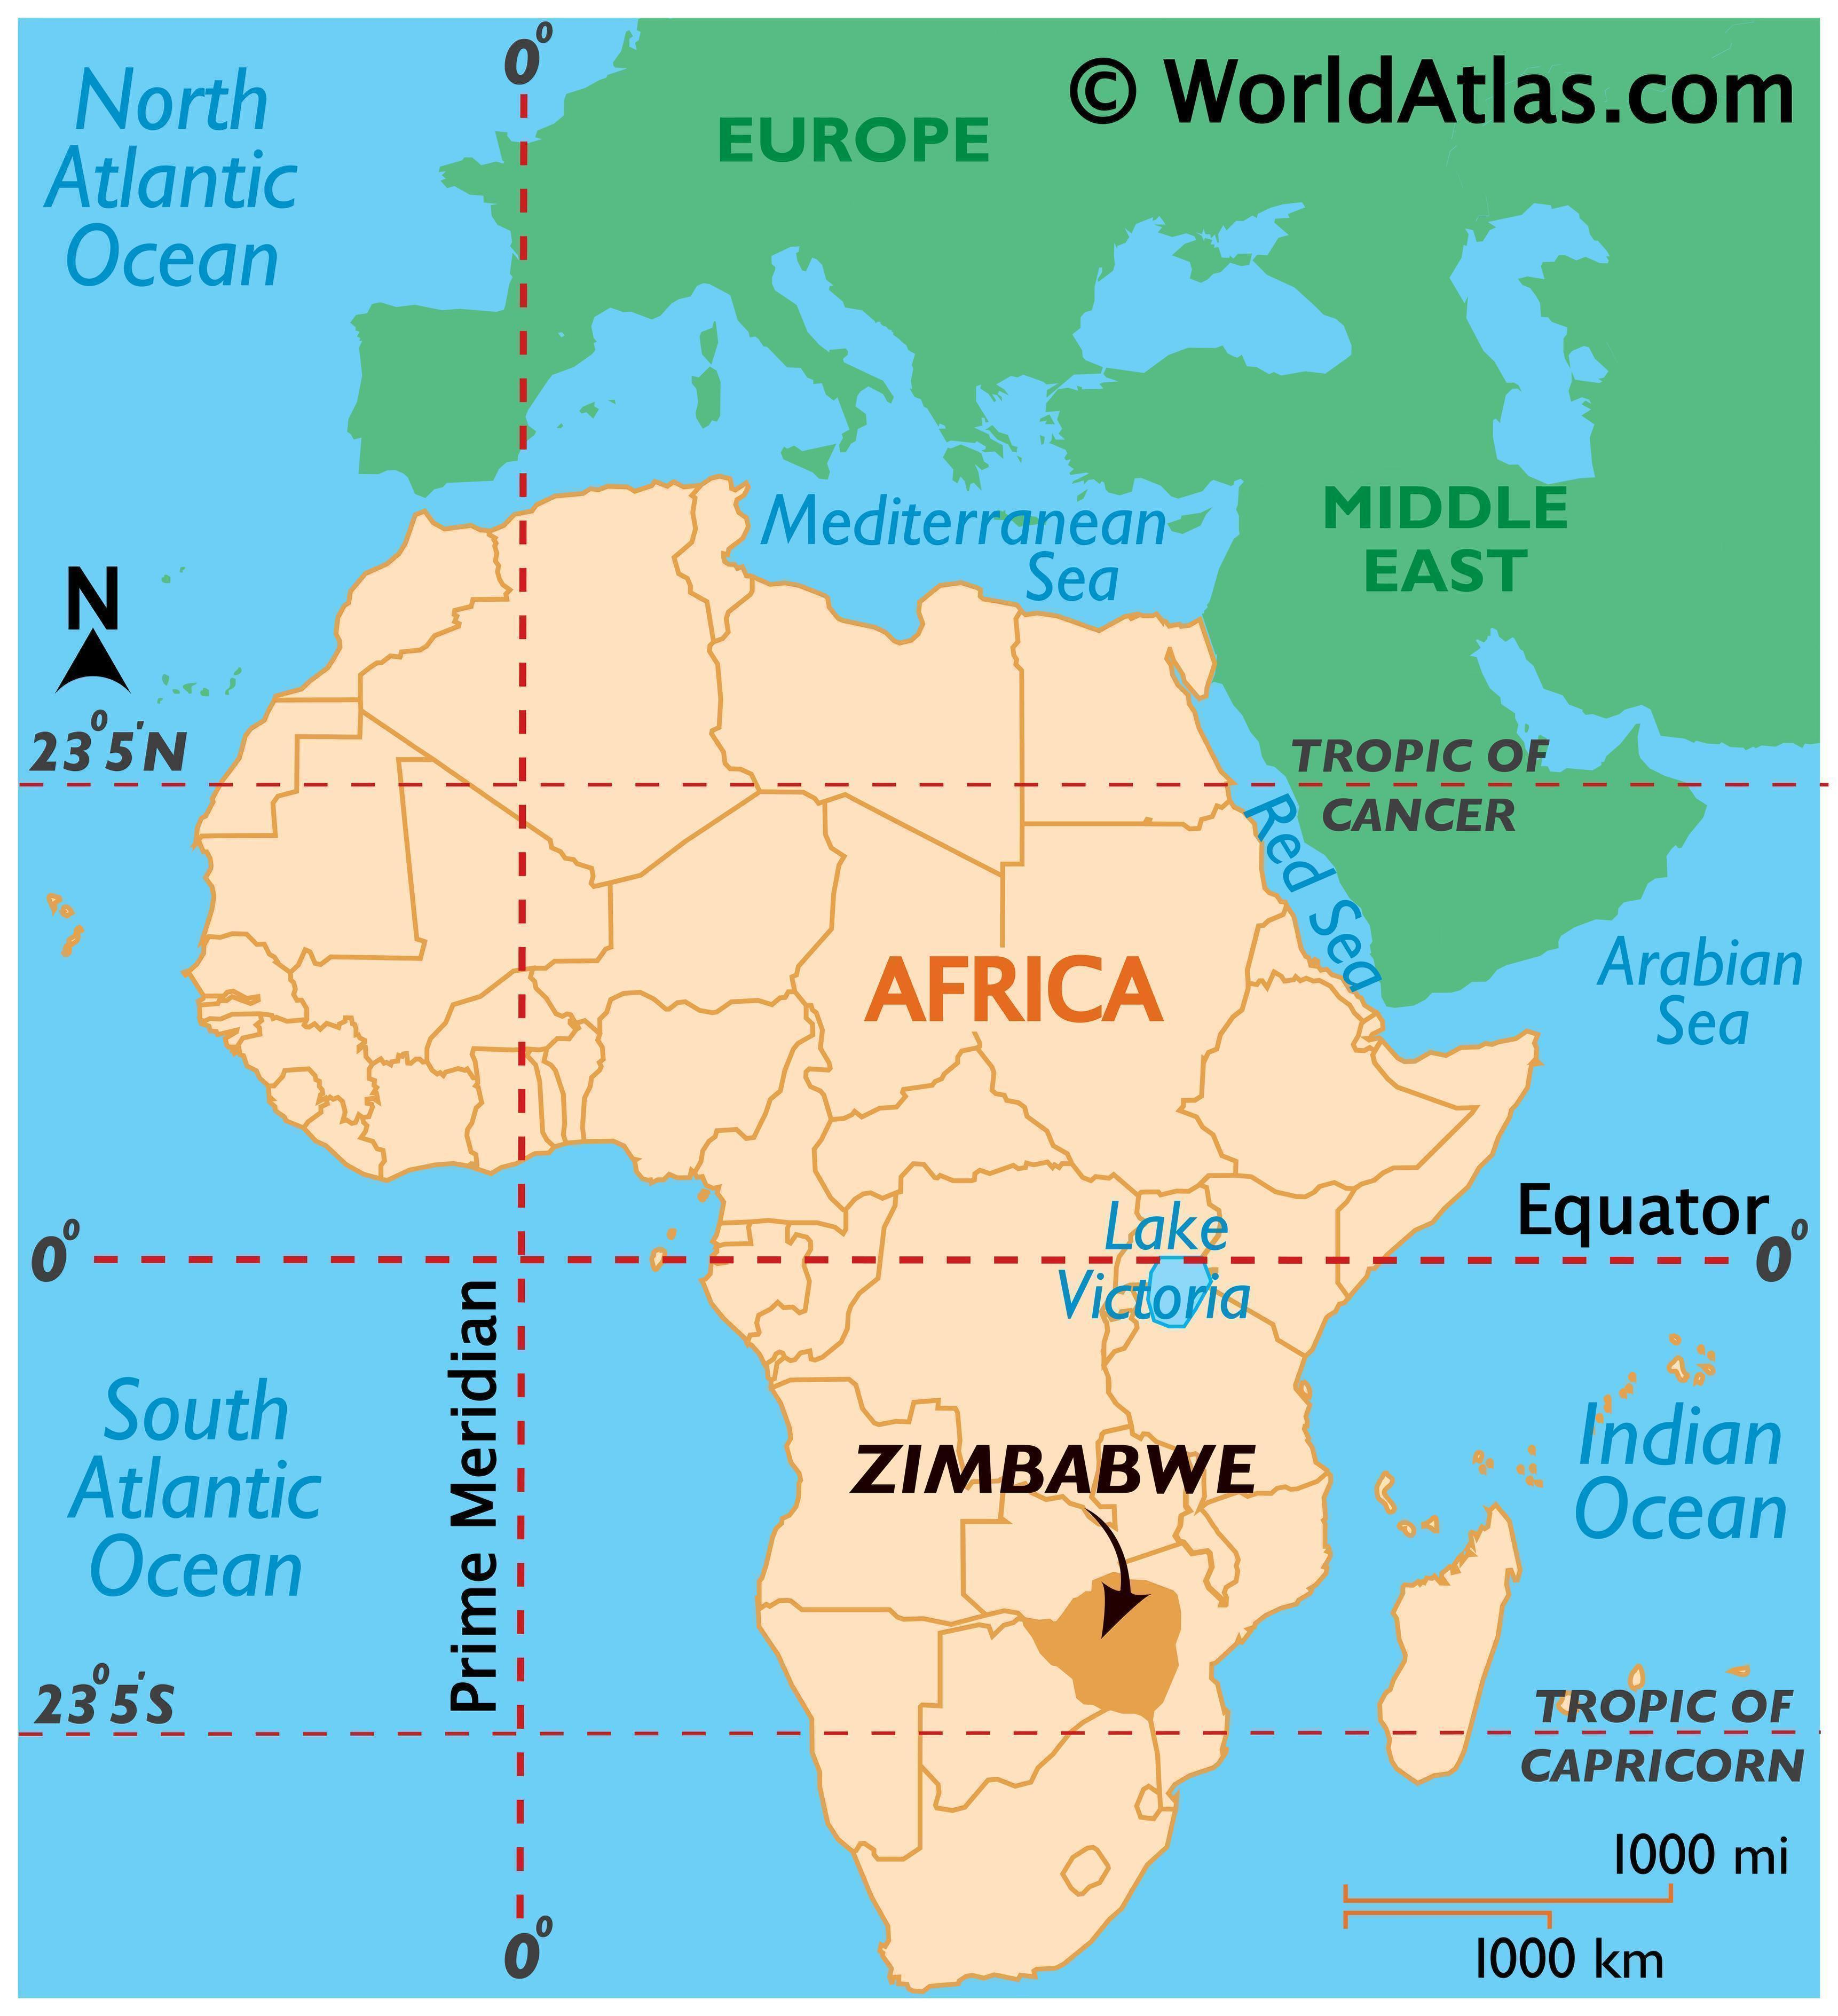 Where is Zimbabwe?